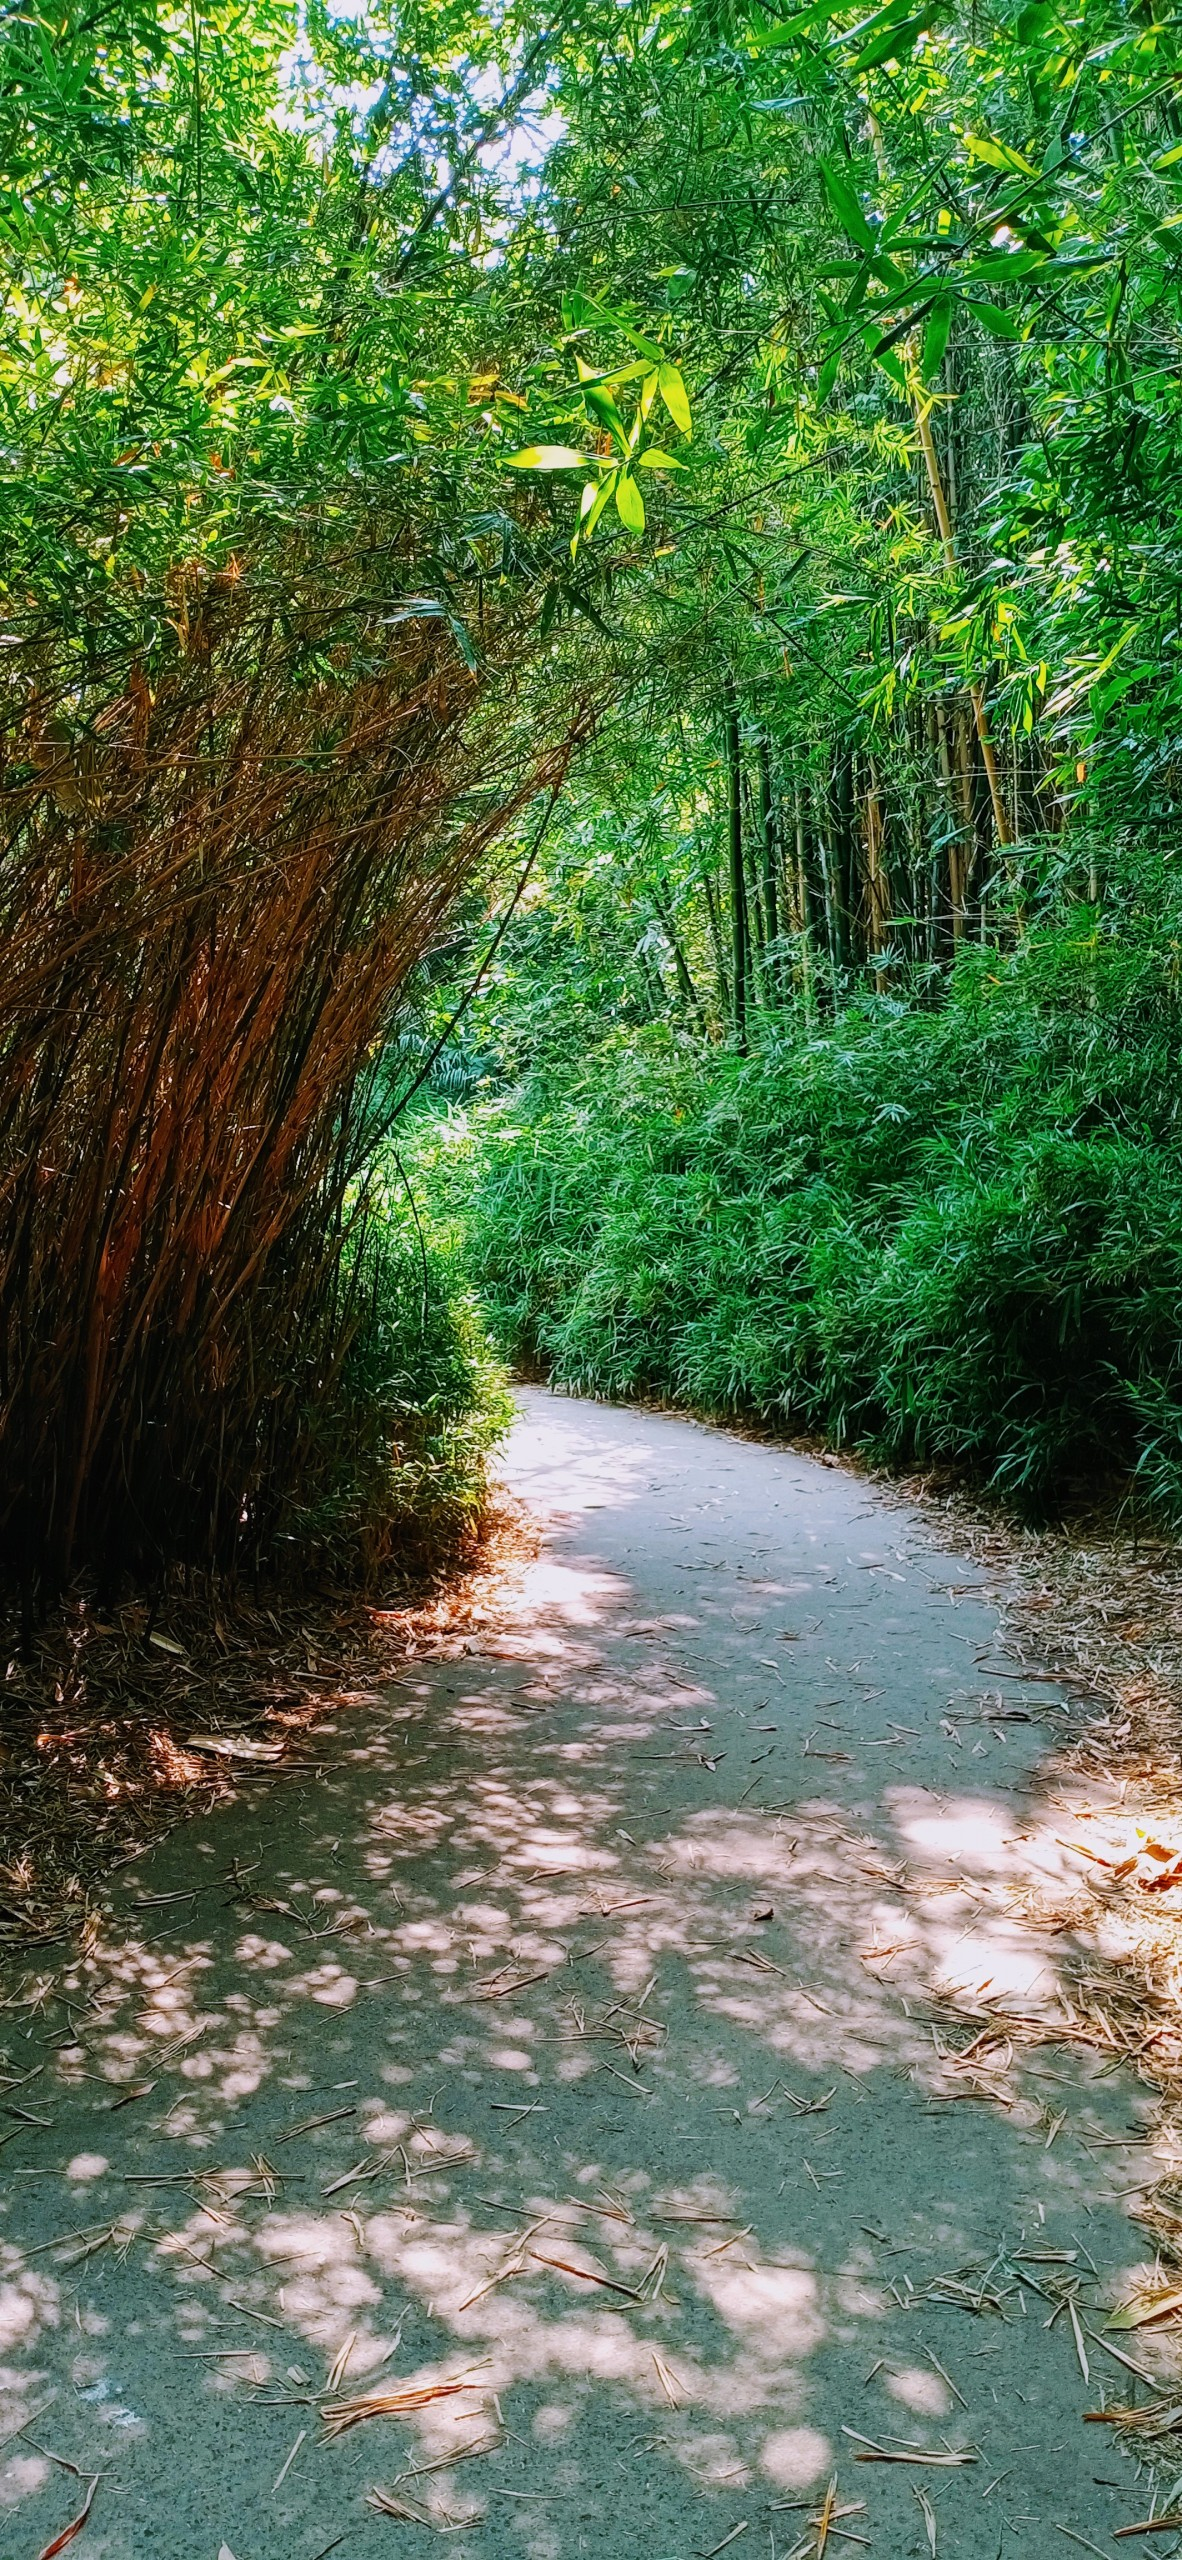 The Bamboo trail